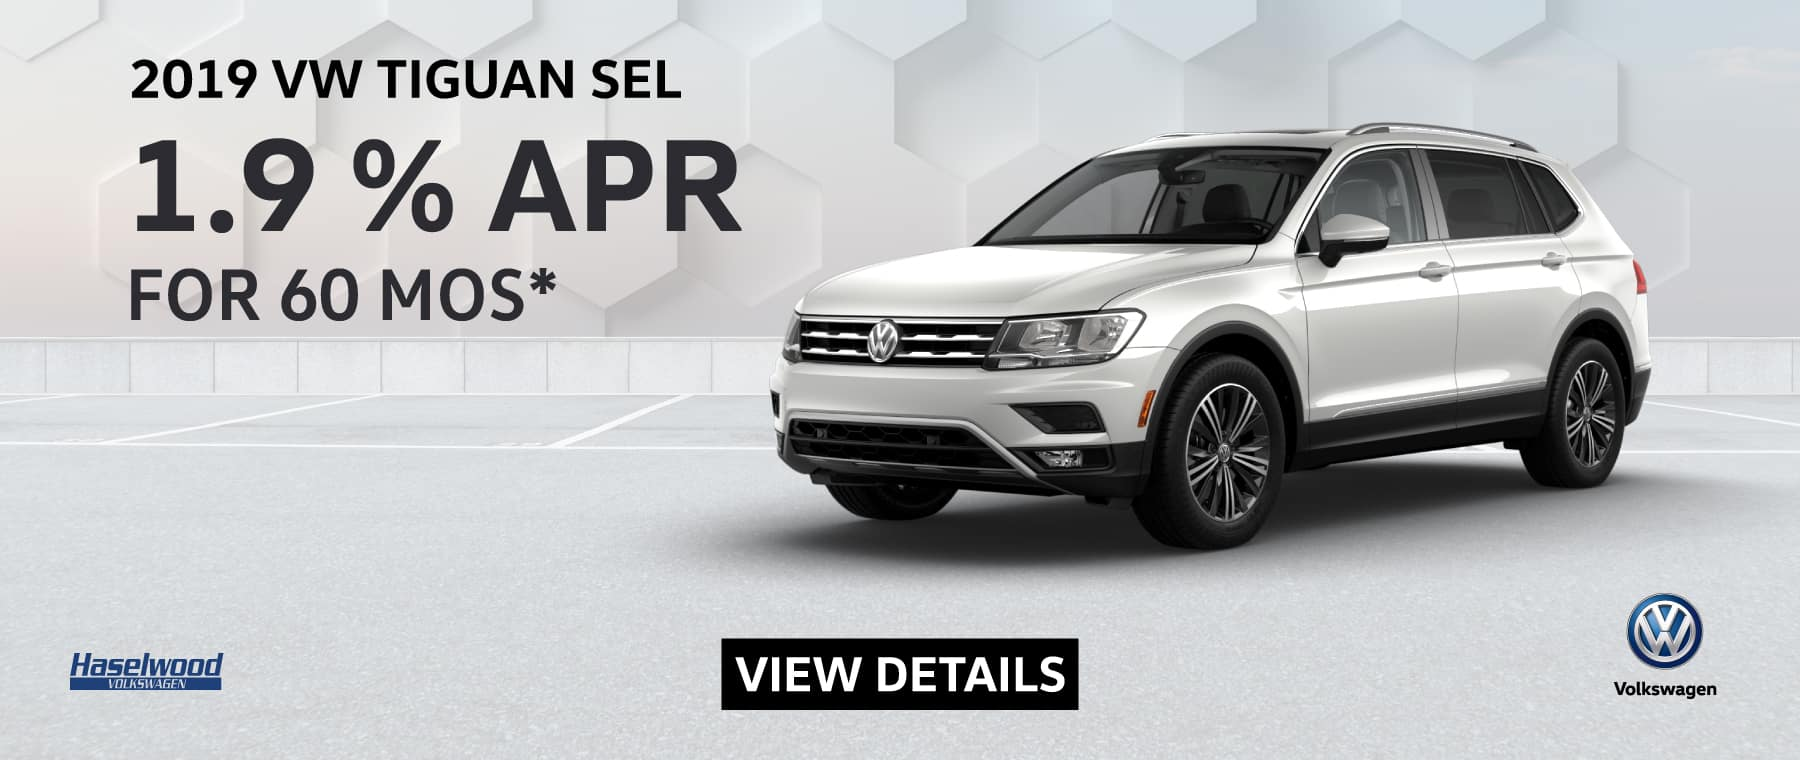 2019 Volkswagen Tiguan SEL  1.9% APR for 60 mos.    * Offer valid on 2019 Volkswagen Tiguan SEL. 1.9% APR for 60 mos. MSRP starting at $34,475.  Valid on Vin: 3VV2B7AX7KM018777, 3VV2B7AX1KM024560, 3VV2B7AX9KM065860. For highly qualified customers on approved top tier credit through Volkswagen Credit. Subject to credit approval. 60 monthly payments required. Down payment and monthly payment may vary. Excludes state and local taxes, tags, registration and title, insurance and dealer charges.  A negotiable dealer documentary service fee of up to $150 may be added to the sale price or capitalized cost. See dealer for complete details and restrictions. 6 years/72,000 miles (whichever occurs first). New Vehicle Limited Warranty on MY2018 and newer VW vehicles, excluding e-Golf. See owner's literature or dealer for warranty exclusions and limitations. Exp. 9/3/2019.